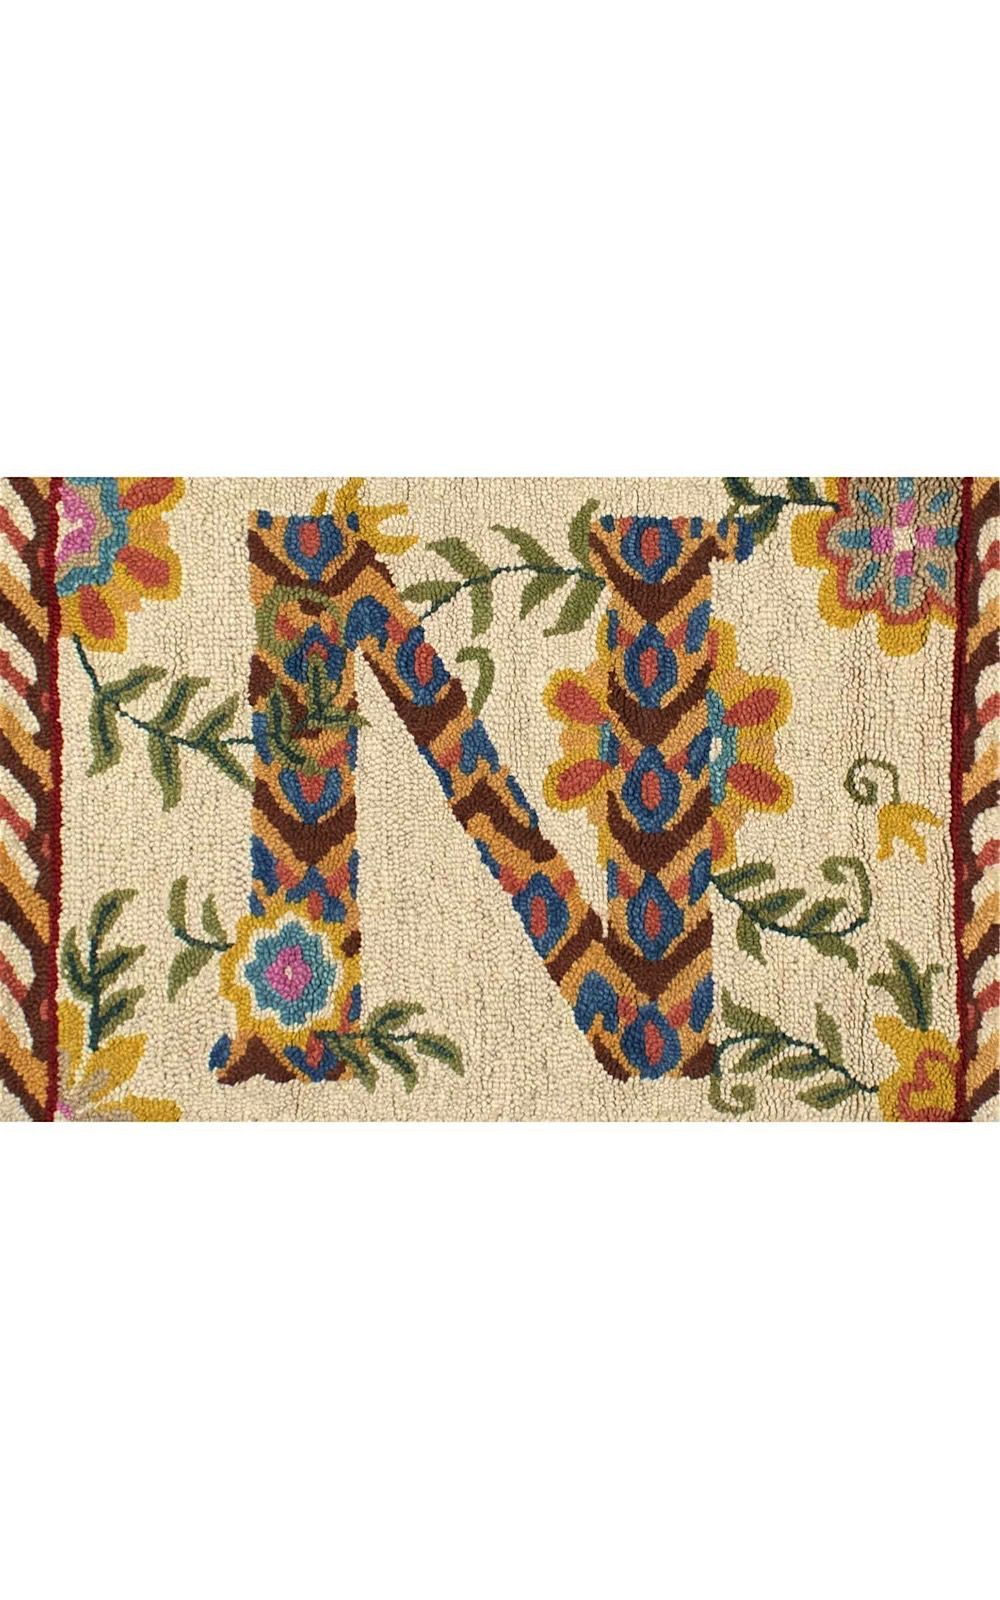 nuloom monogrammed indoor/outdoor area rug collection